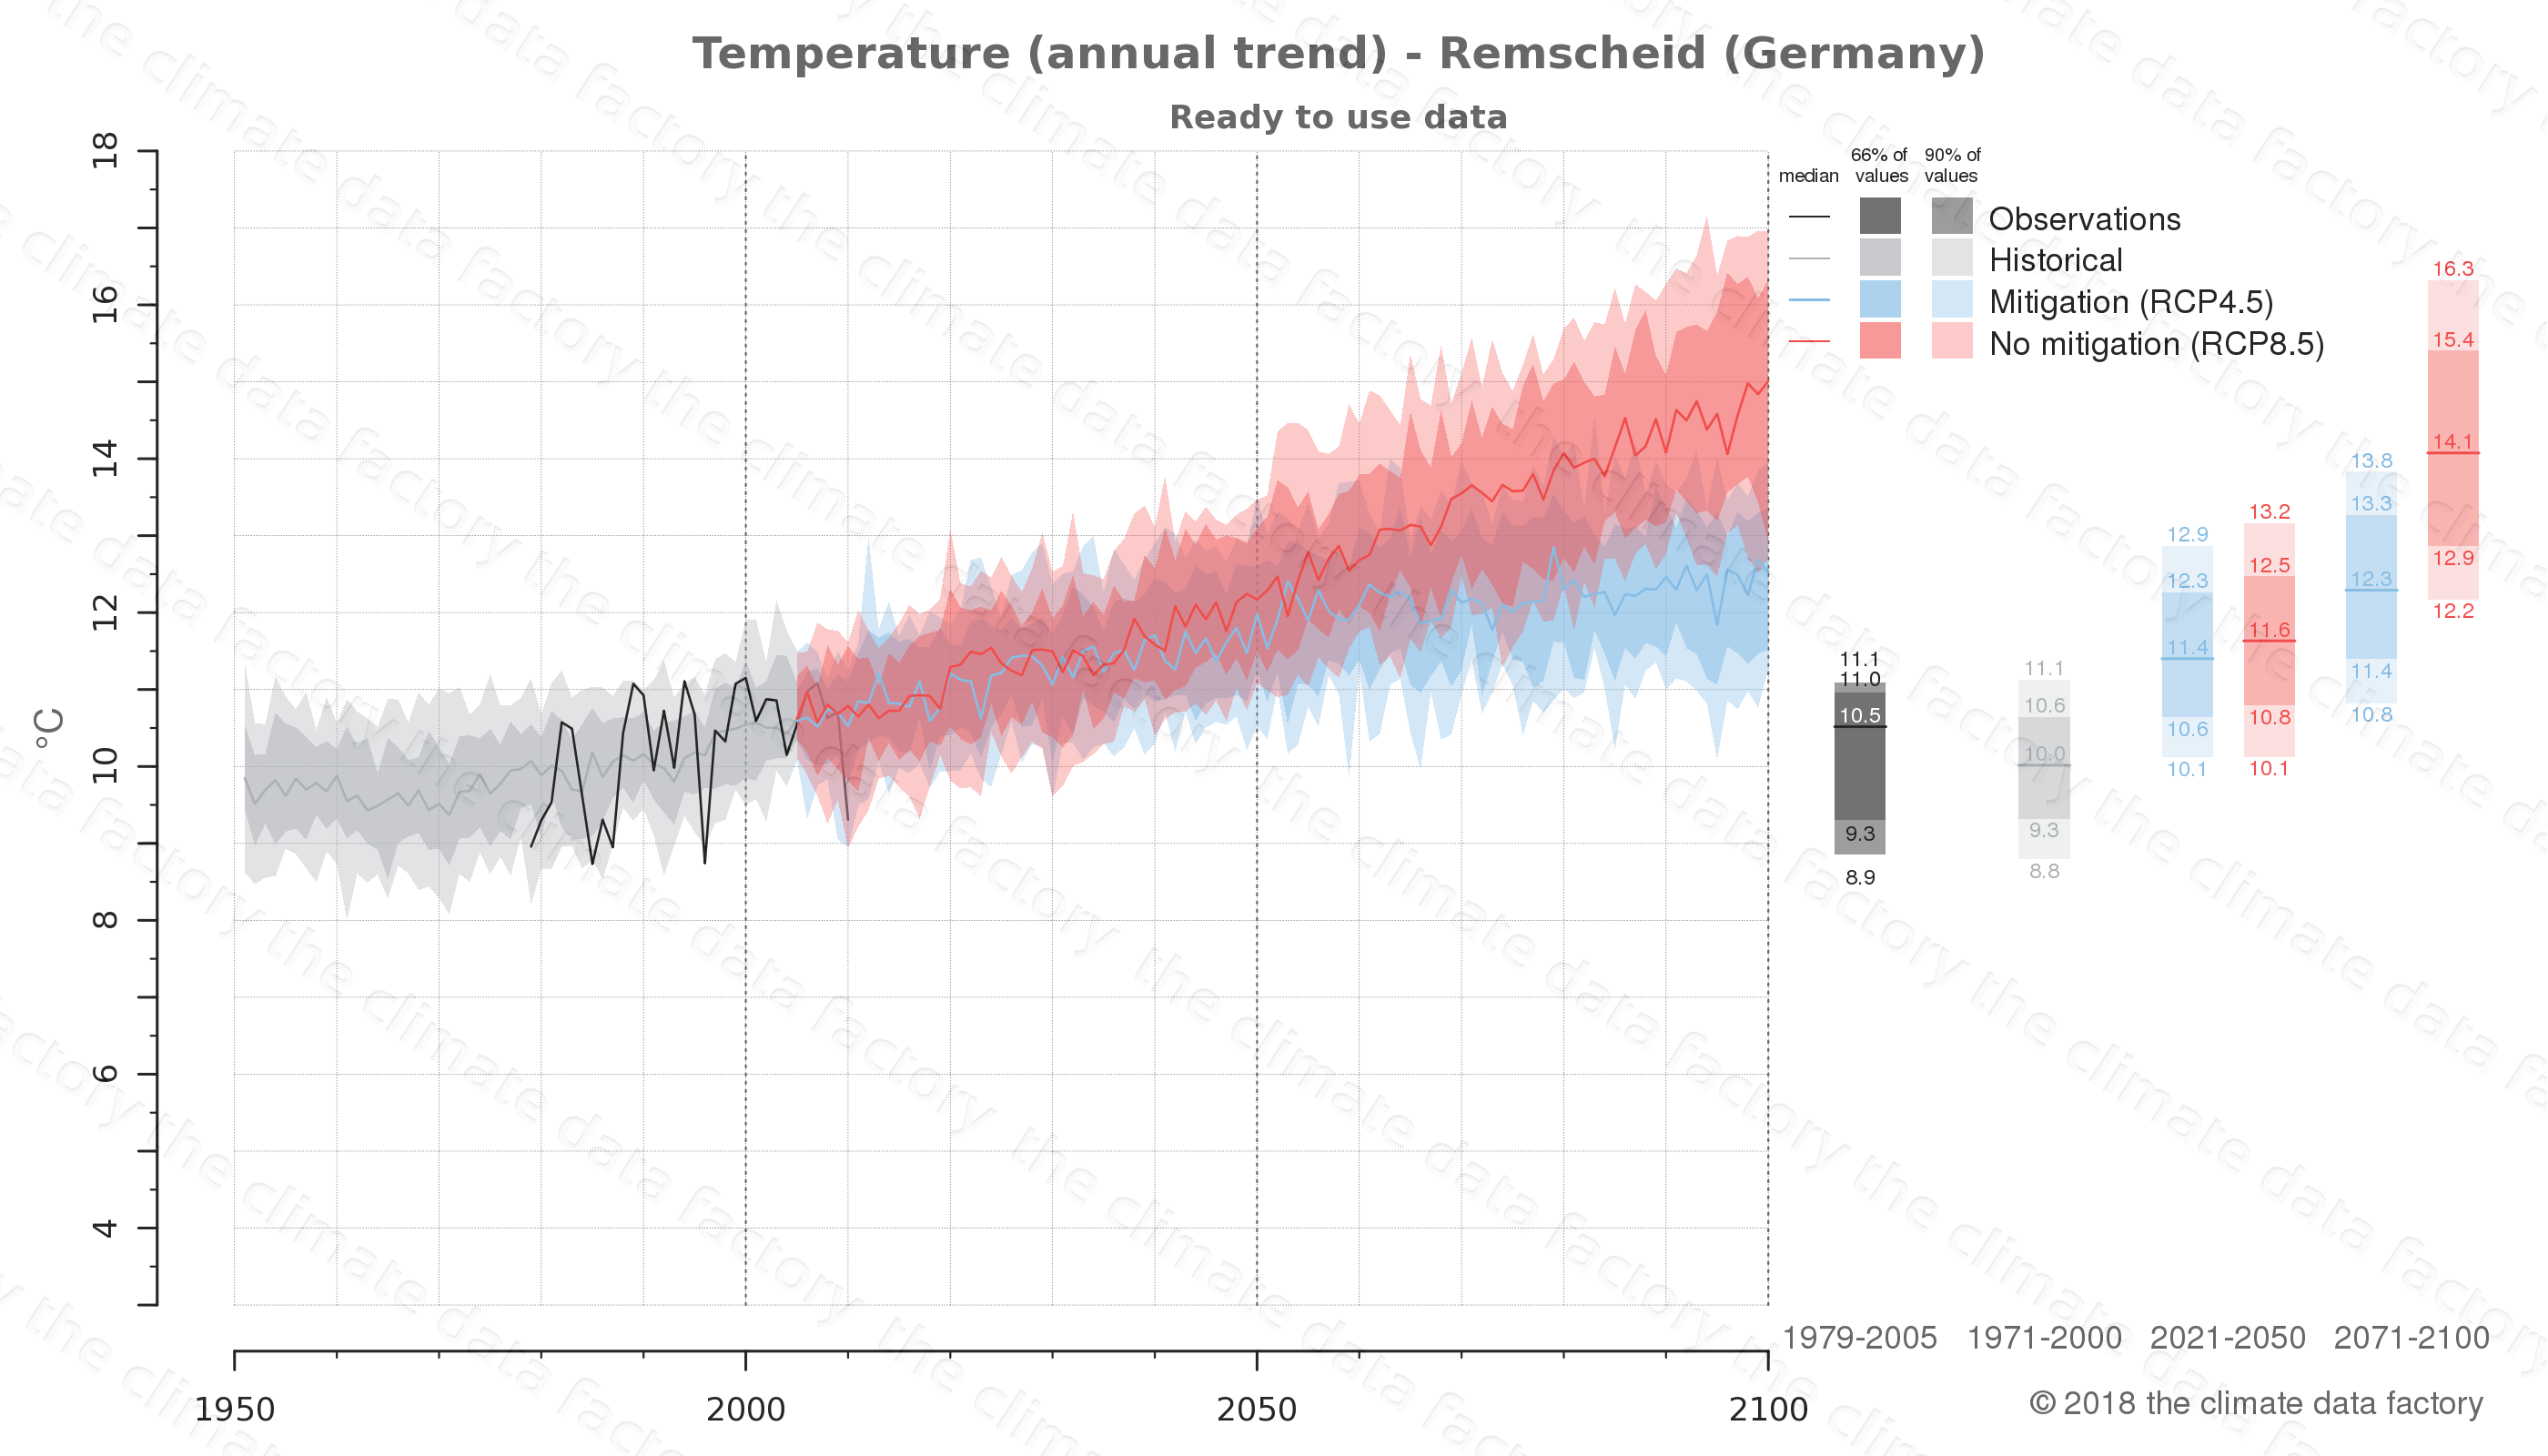 climate change data policy adaptation climate graph city data temperature remscheid germany